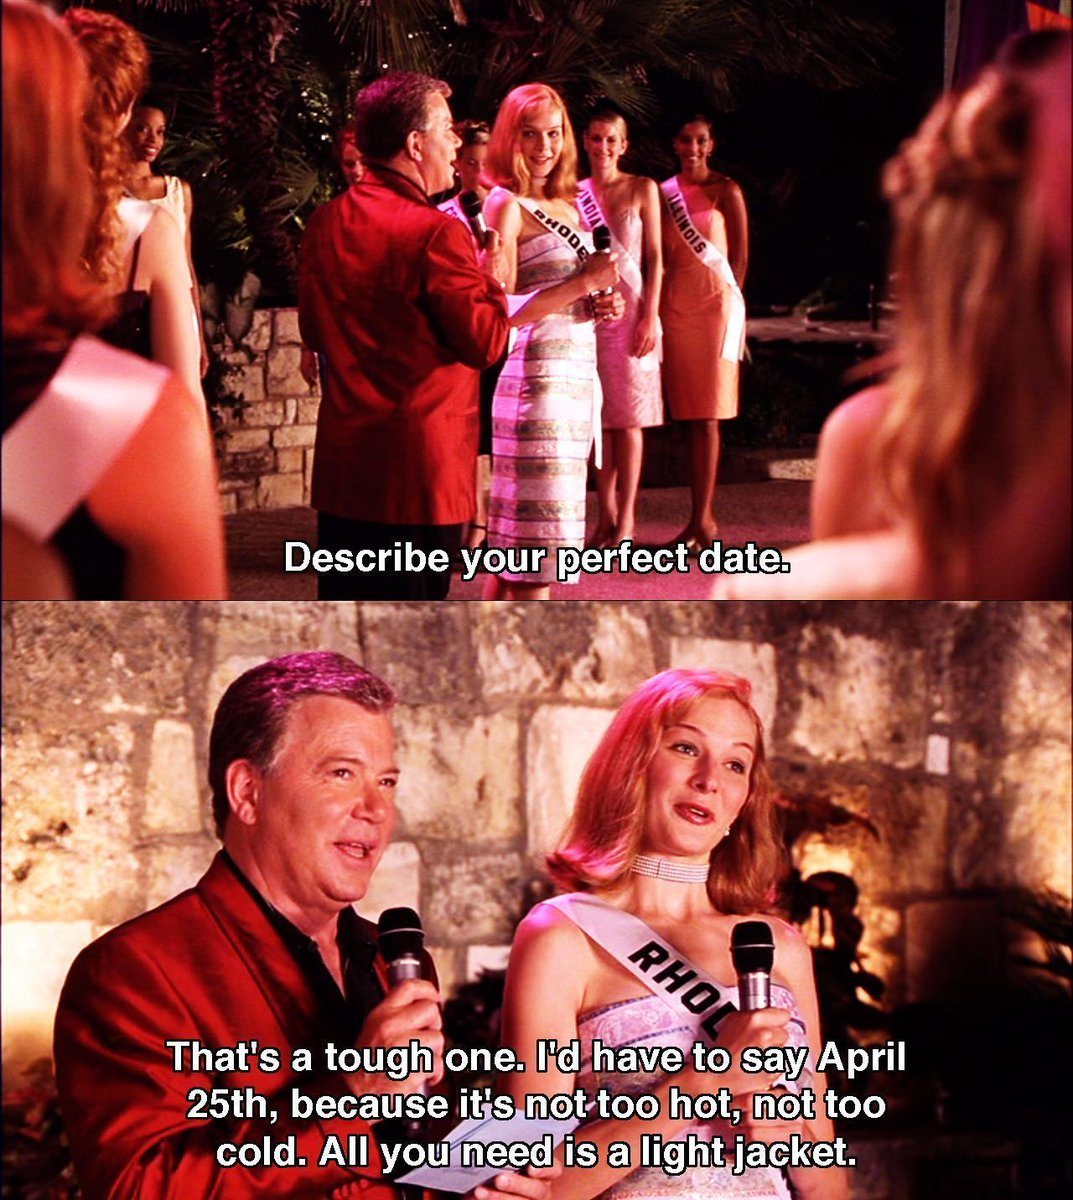 April 25th. The perfect date.  @WilliamShatner